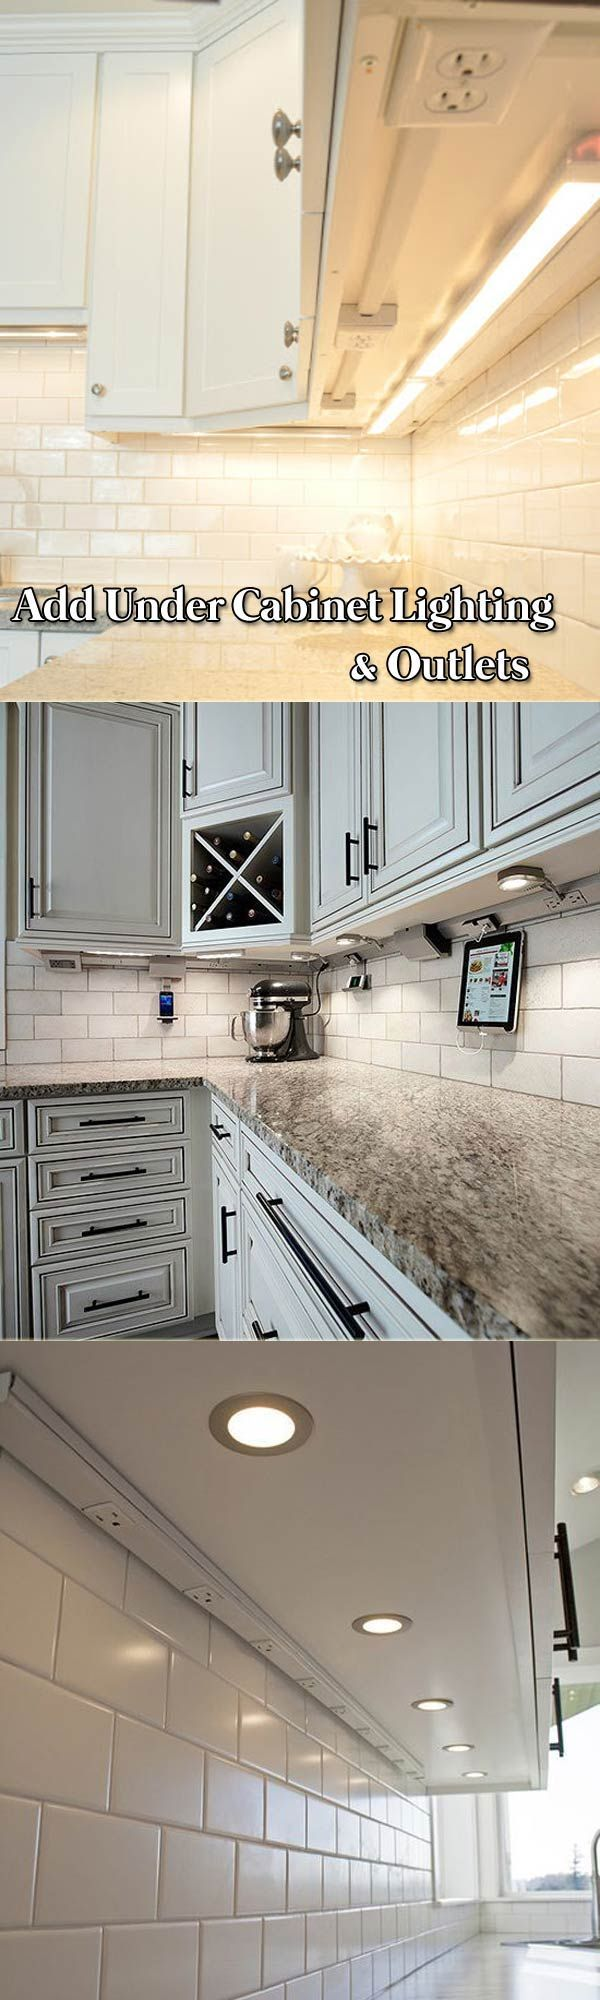 Add Under Cabinet Lighting And Outlets To Your Kitchen Remodeling Undercabinet In 2020 Kitchen Dinning Room Diy Kitchen Cabinets Home